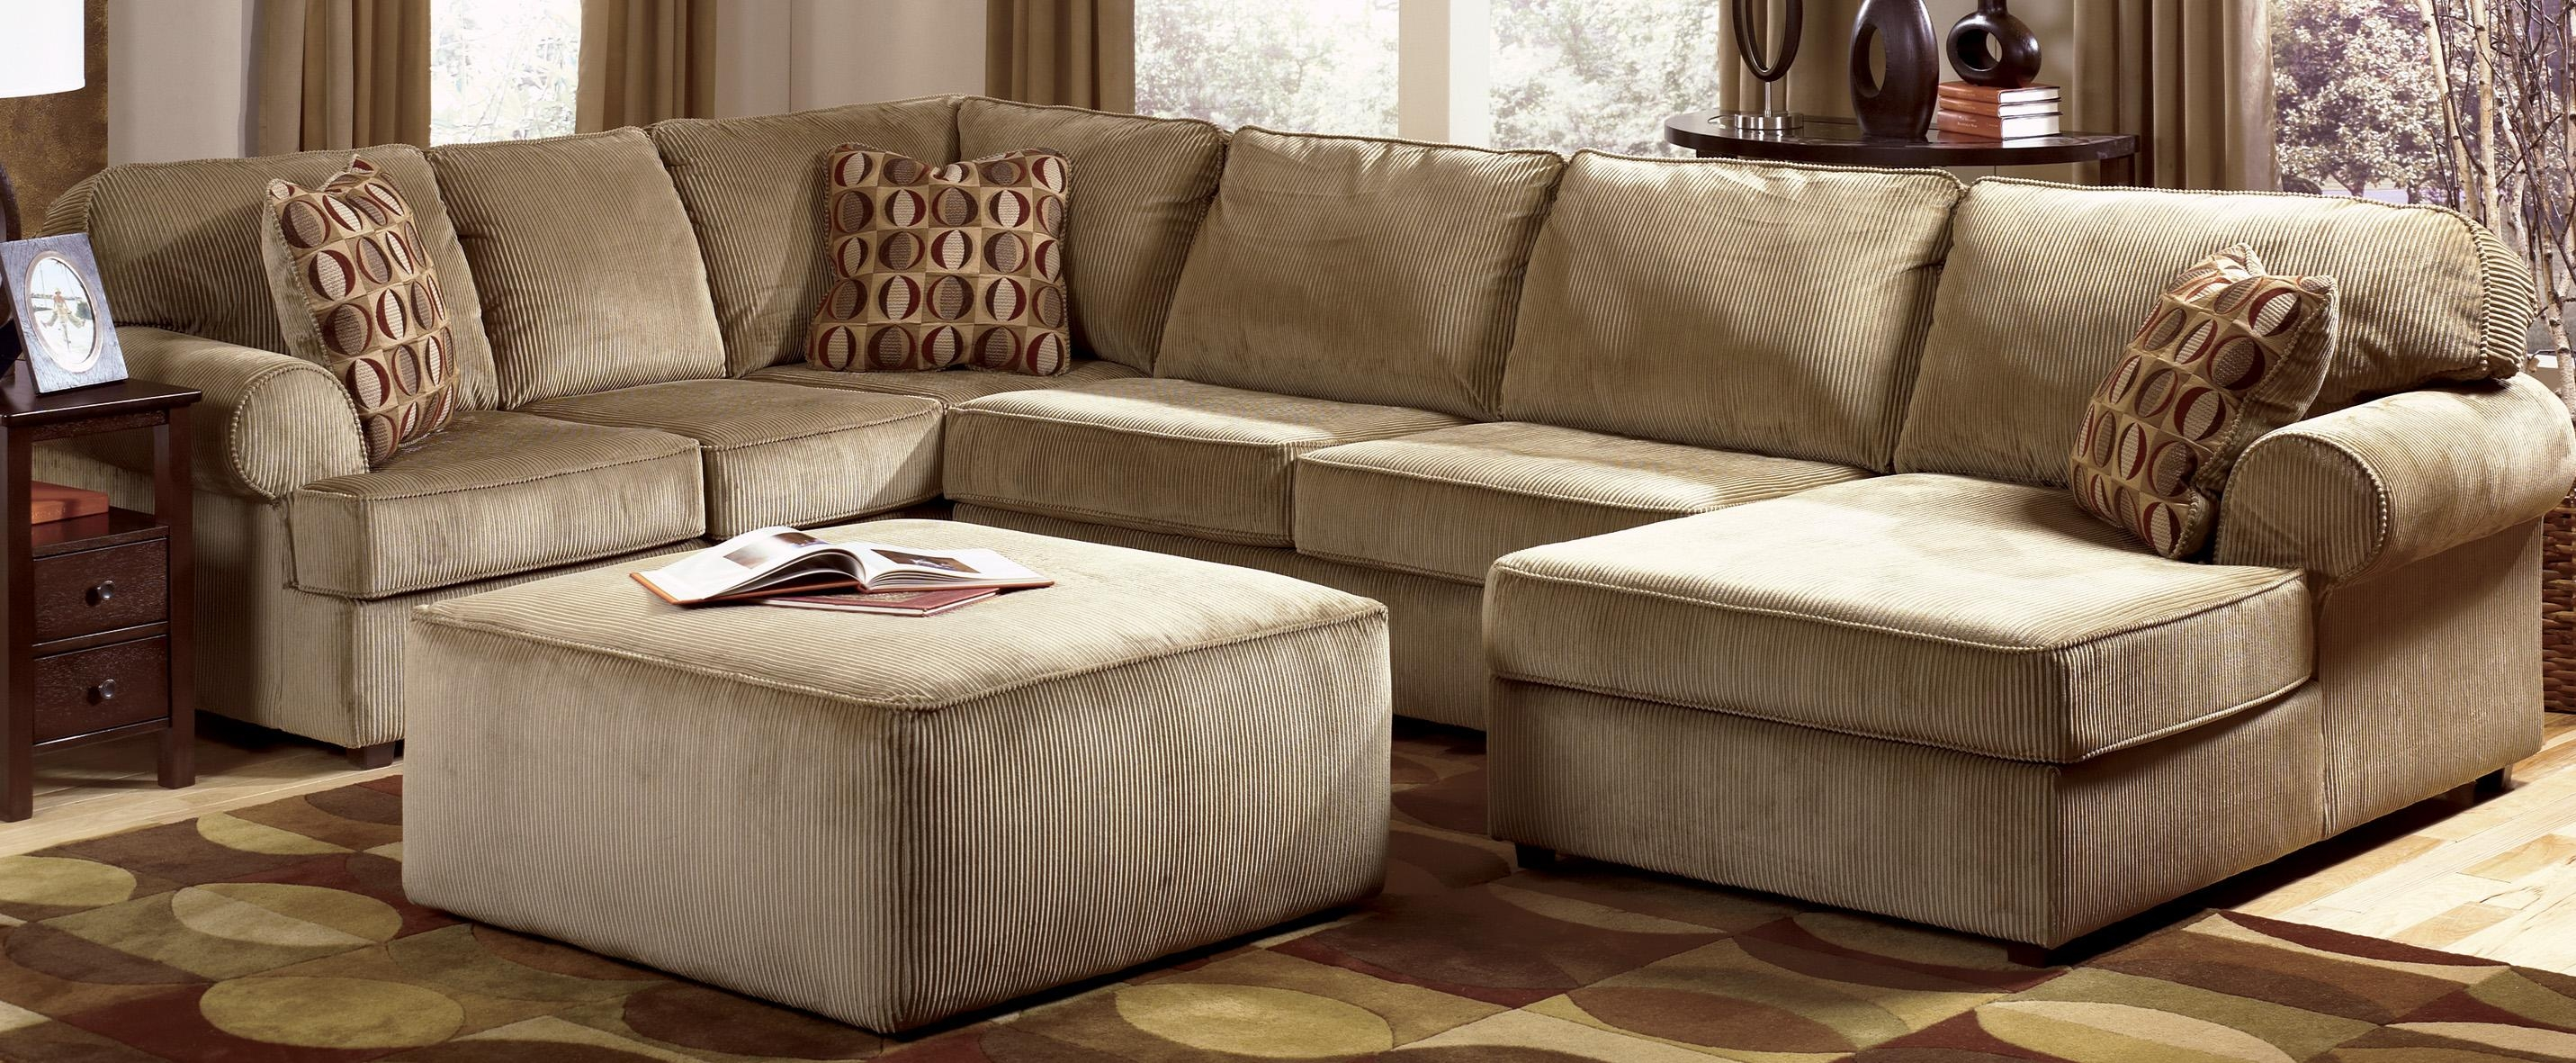 Living Room: Cool Affordable Sectional Sofas For Elegant Living In Inexpensive Sectional Sofas For Small Spaces (Image 13 of 20)